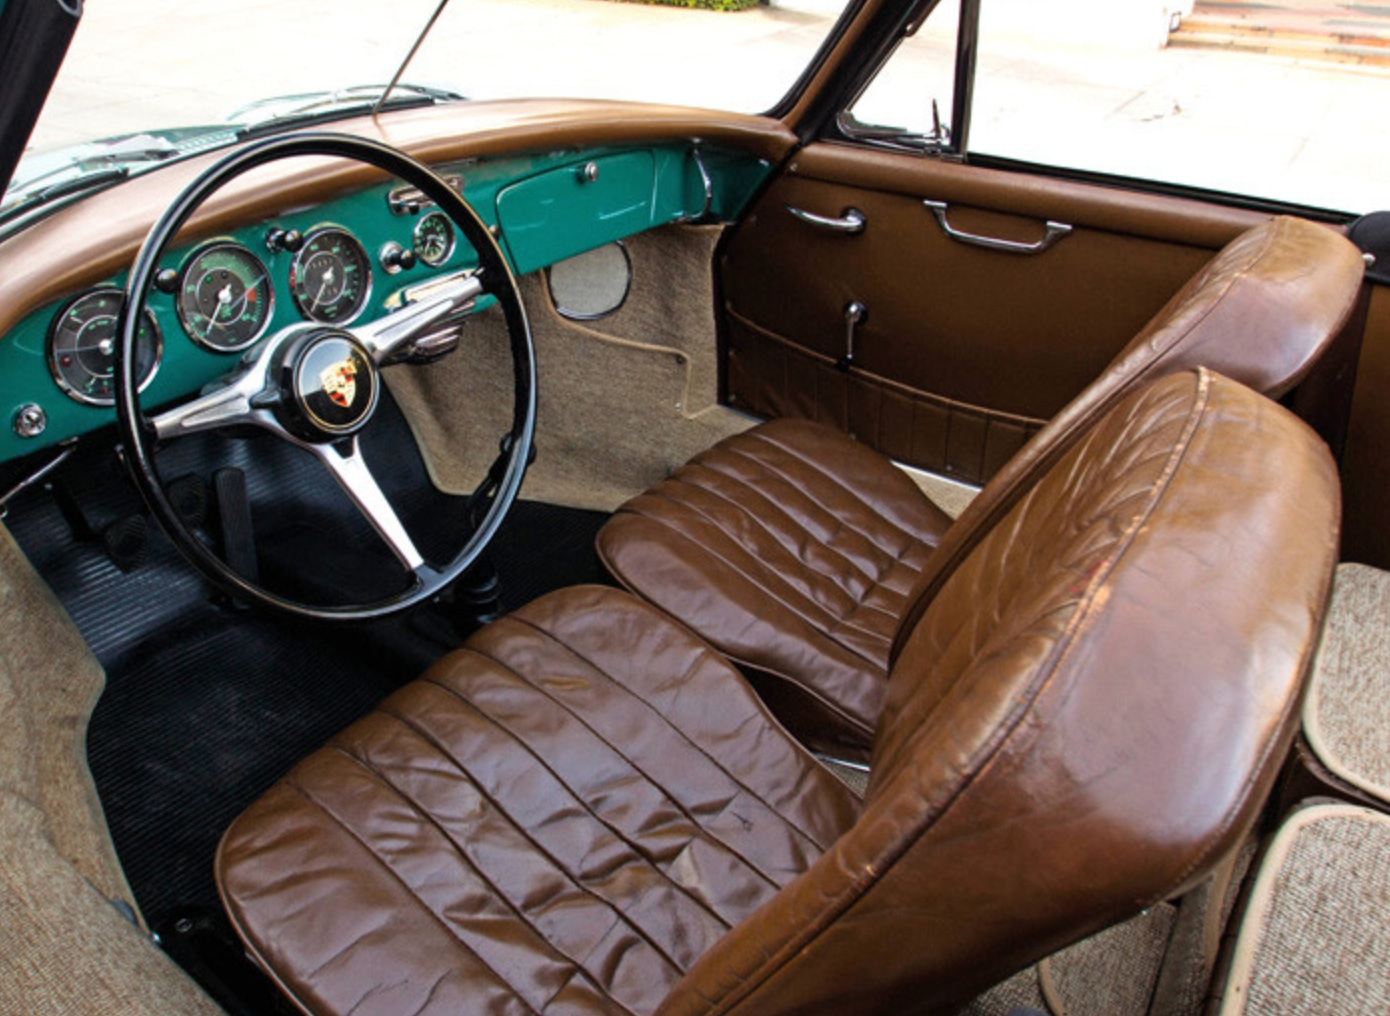 1962 Porsche 356b Super Cabriolet German Cars For Sale Blog